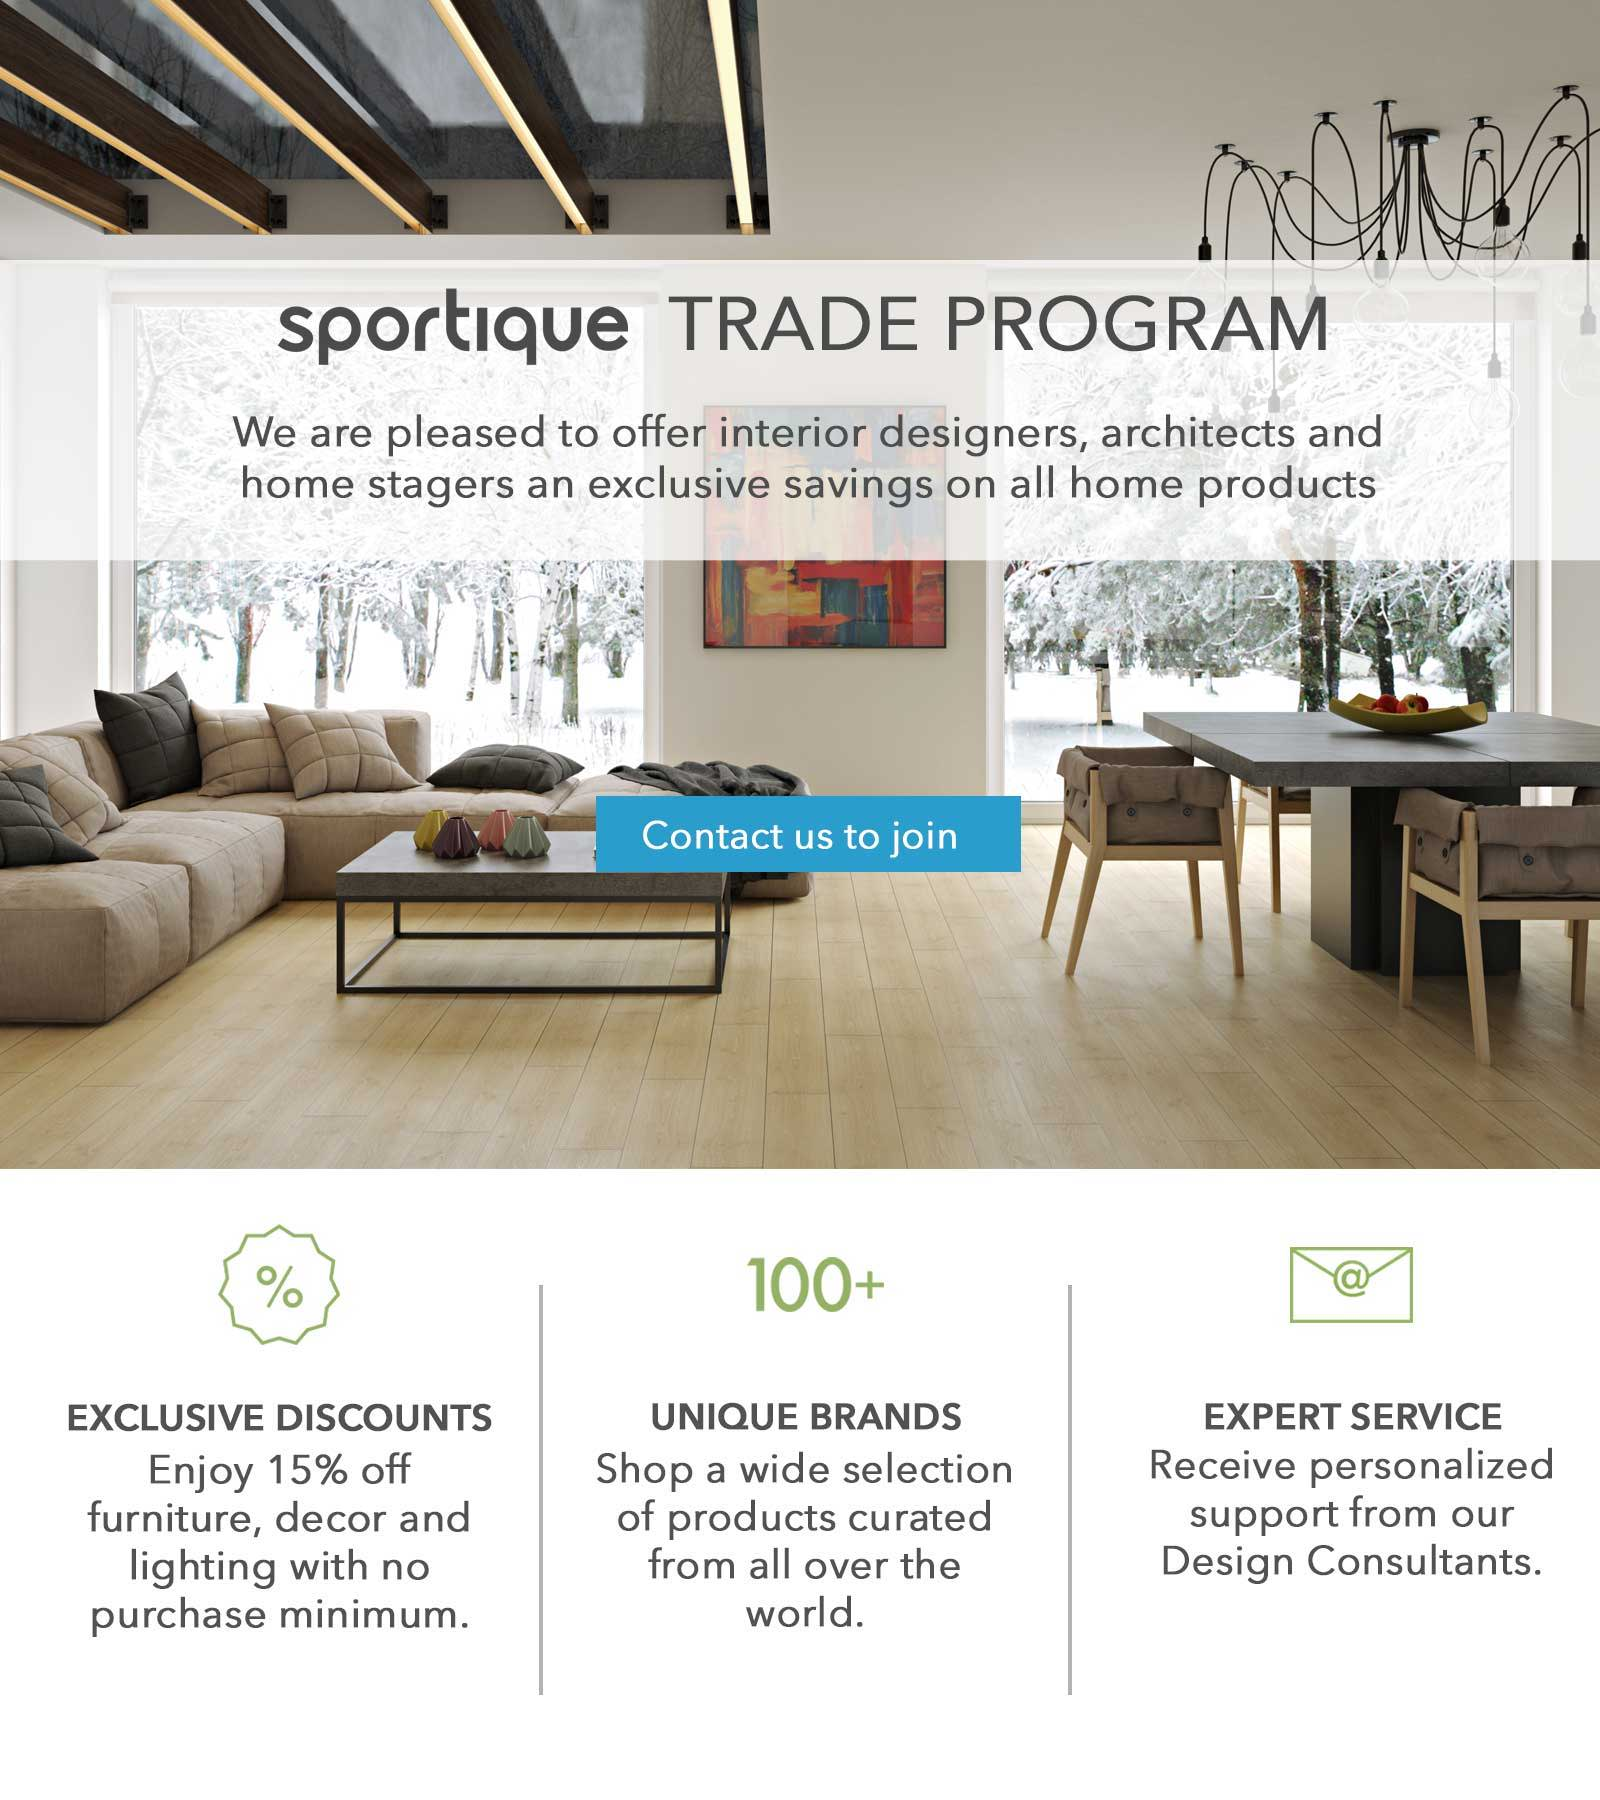 Sportique Trade Program For Interior